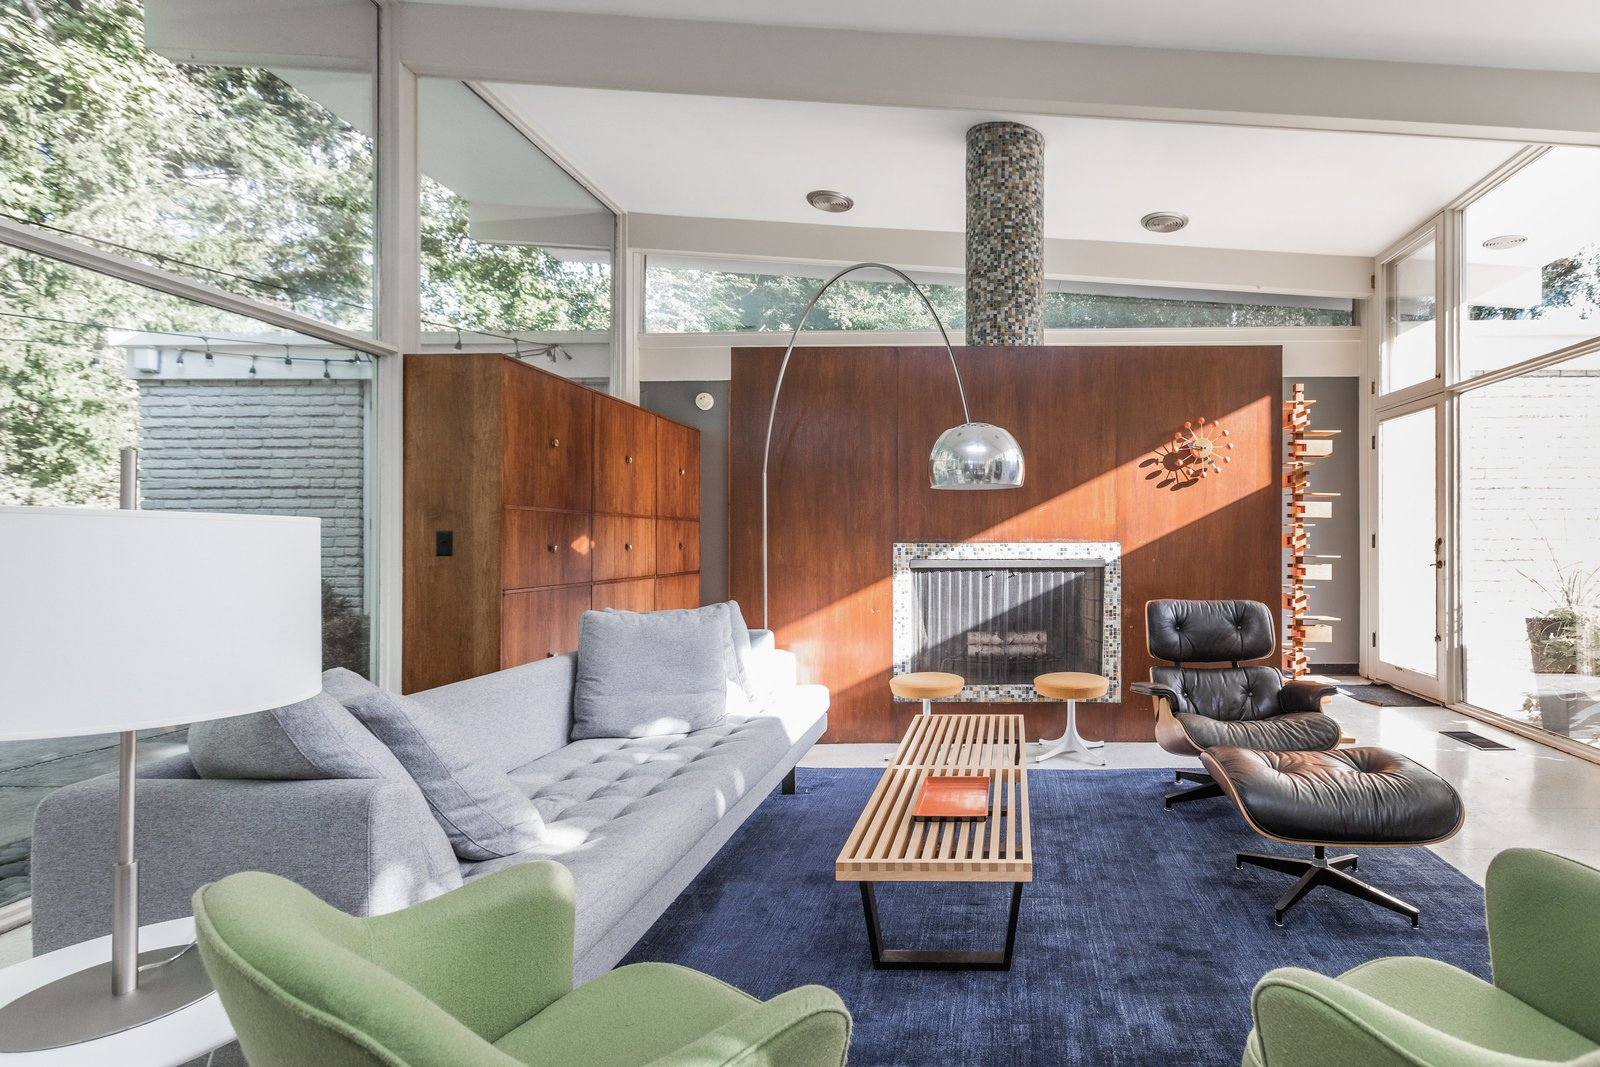 Living Room, Sofa, Chair, Stools, Coffee Tables, End Tables, Lamps, Floor Lighting, Storage, Table Lighting, Wood Burning Fireplace, and Recliner  Photo 5 of 10 in A Midcentury Gem by a Famed Indiana Architect Offered at $450K